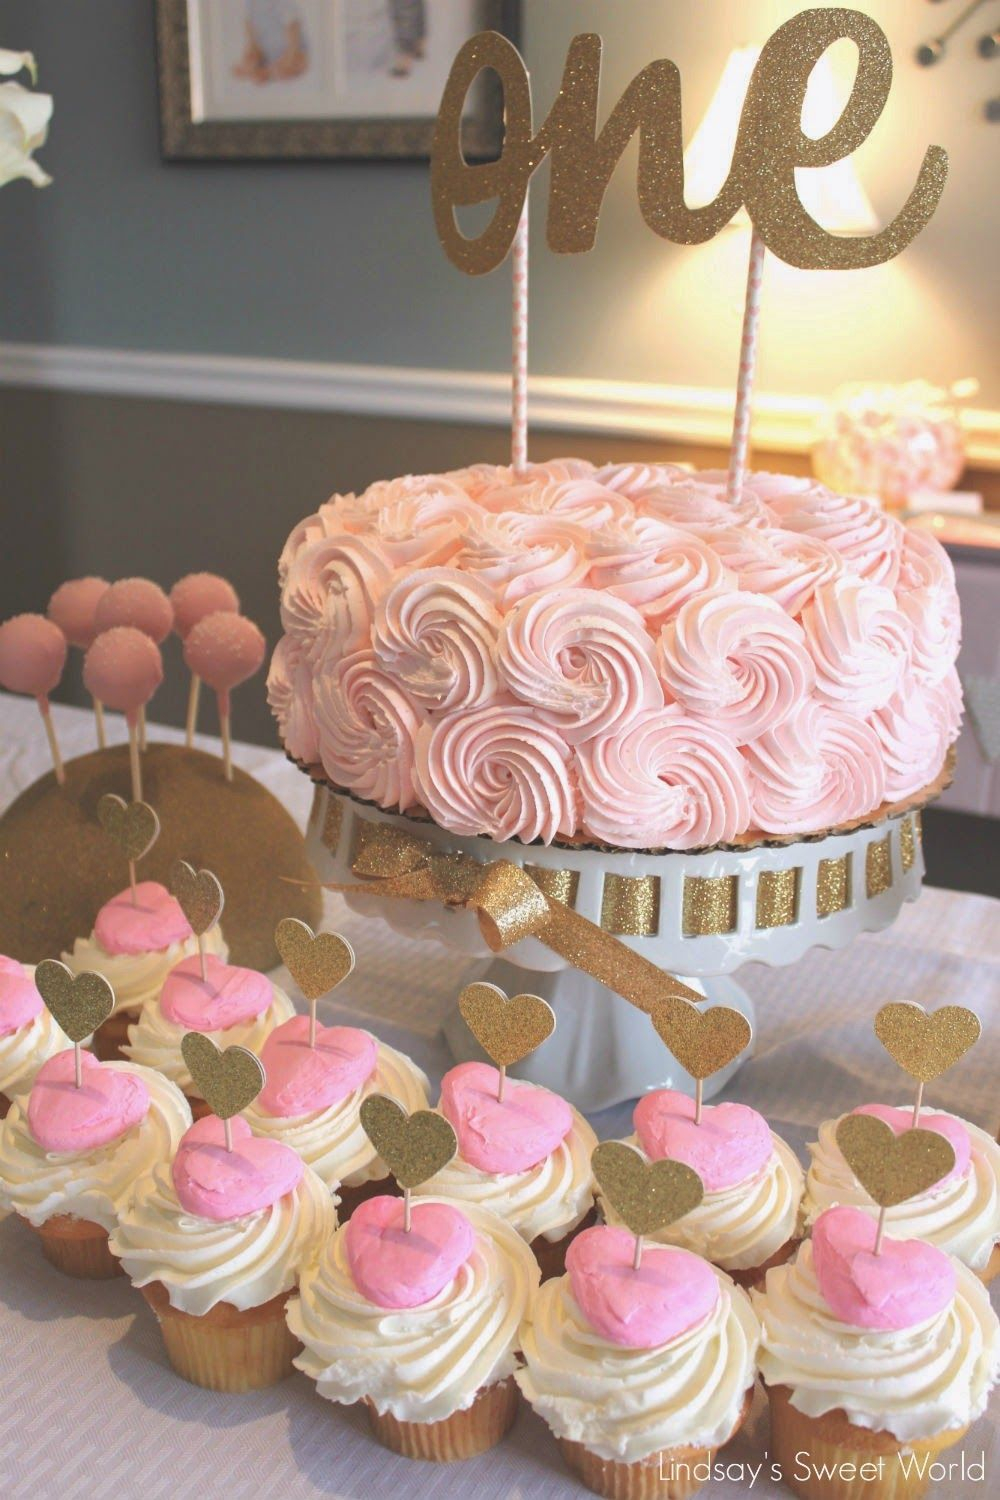 Birthday Cake Ideas For Girls Olivia Cates Pink Gold First Party Published January 8 2019 At 1000 X 1500